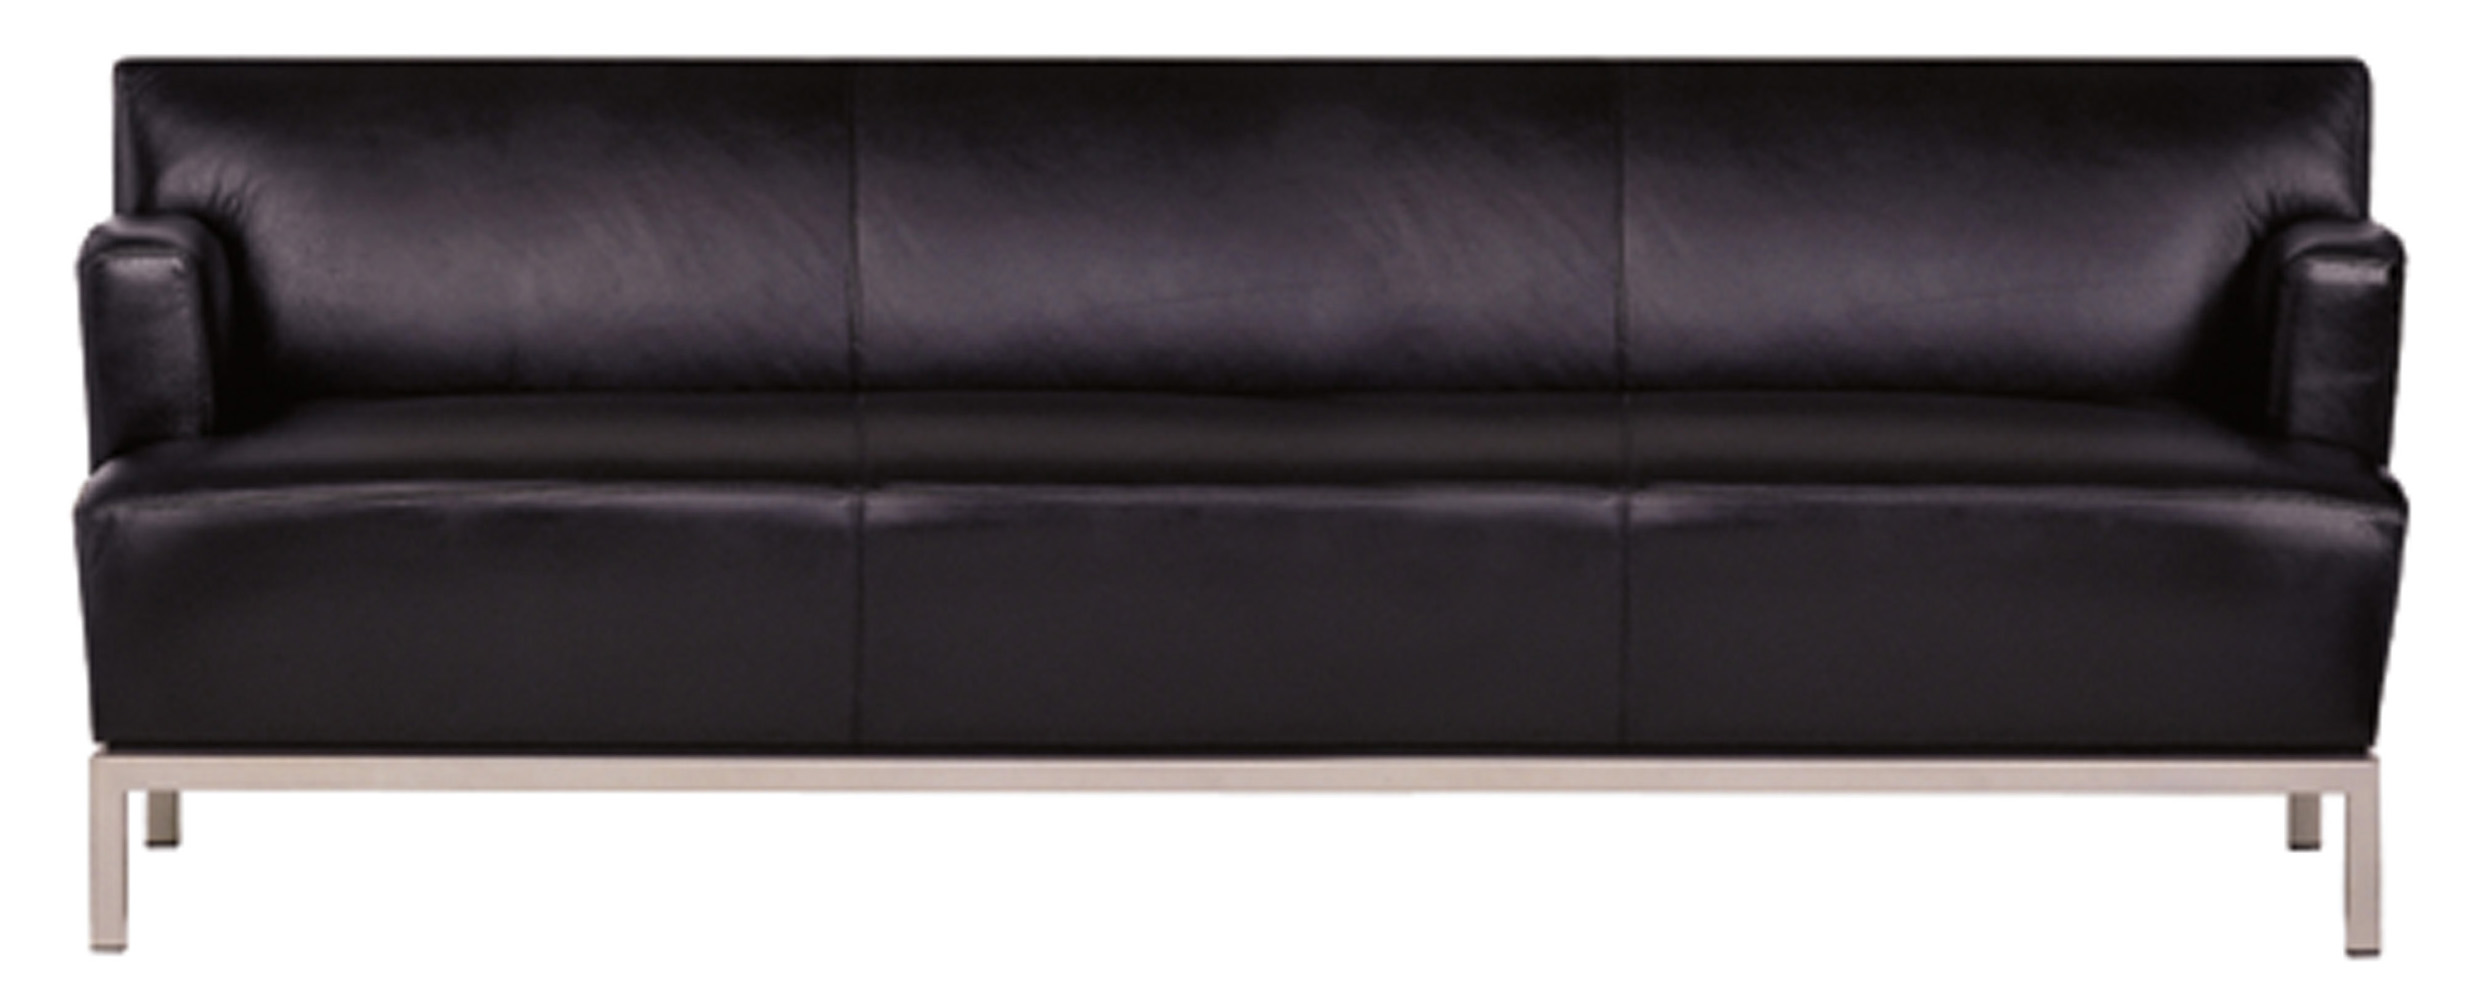 Healthcare Sofa Seating